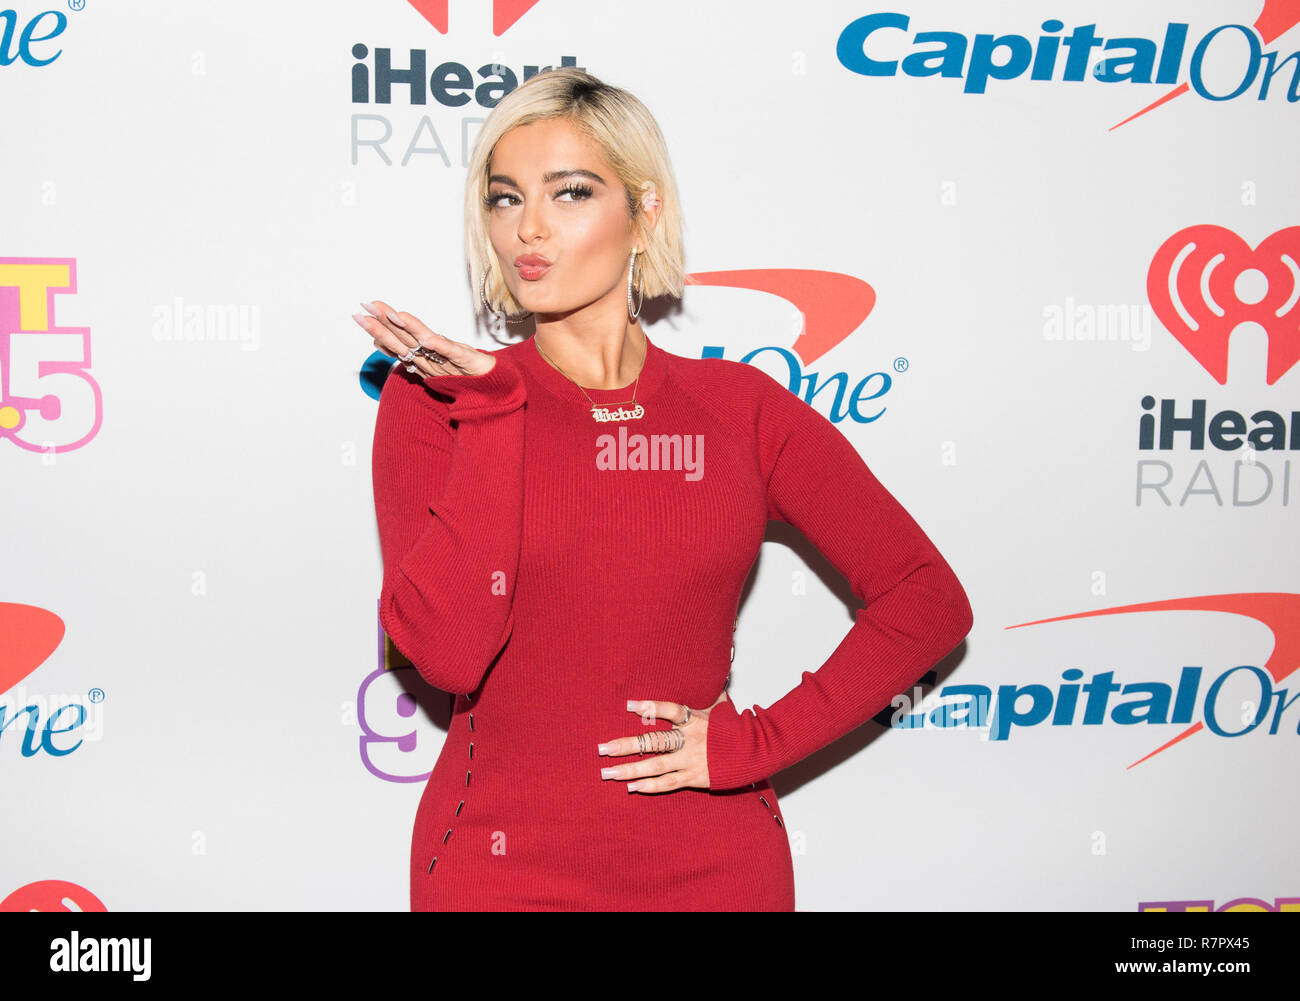 Washington DC, USA. 10th Dec 2018. Bebe Rexha arrives at Hot 99.5's iHeartRadio Jingle Ball 2018 at Capital One Arena on December 10, 2018 in Washington, DC. Photo: Lisa Walker for imageSPACE/MediaPunch Credit: MediaPunch Inc/Alamy Live News Stock Photo